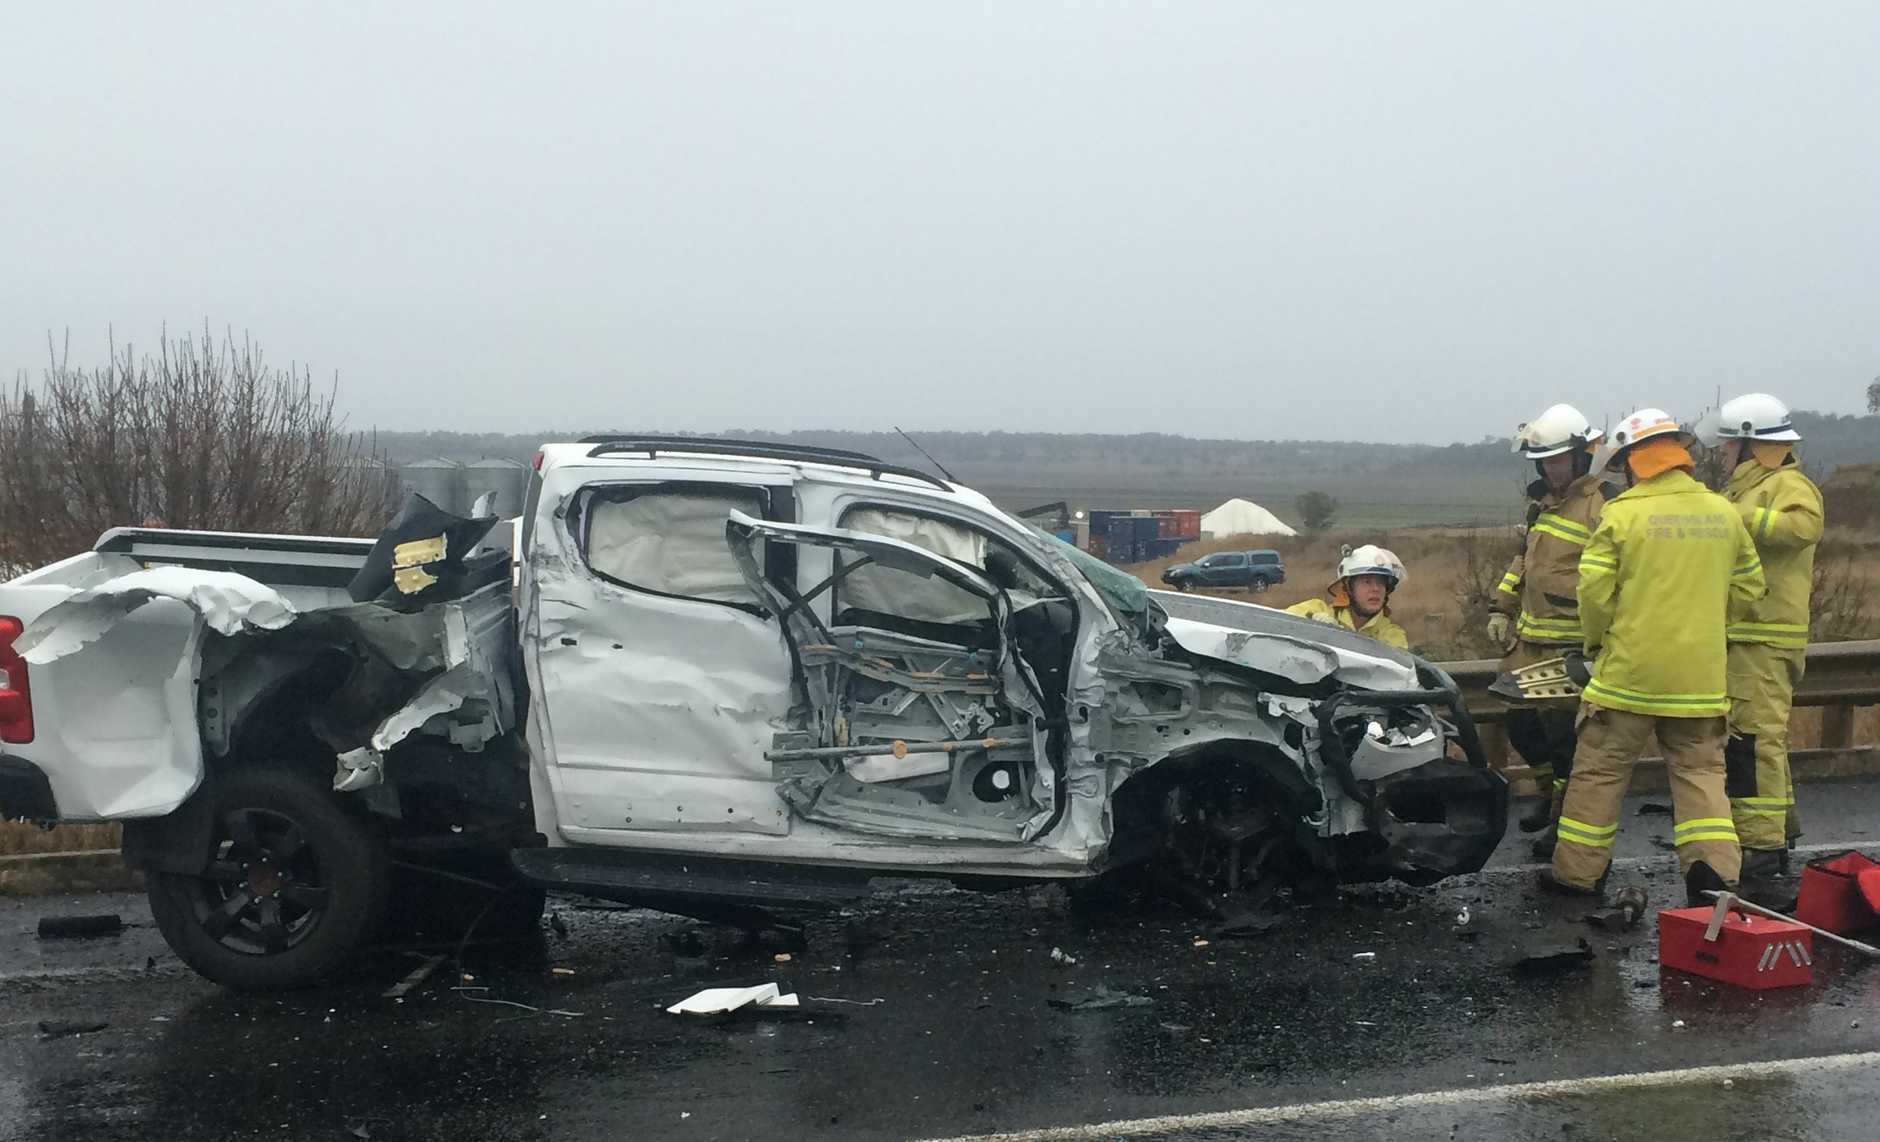 One of the vehicles involved in a crash between a truck and two vehicles just west of Toowoomba.